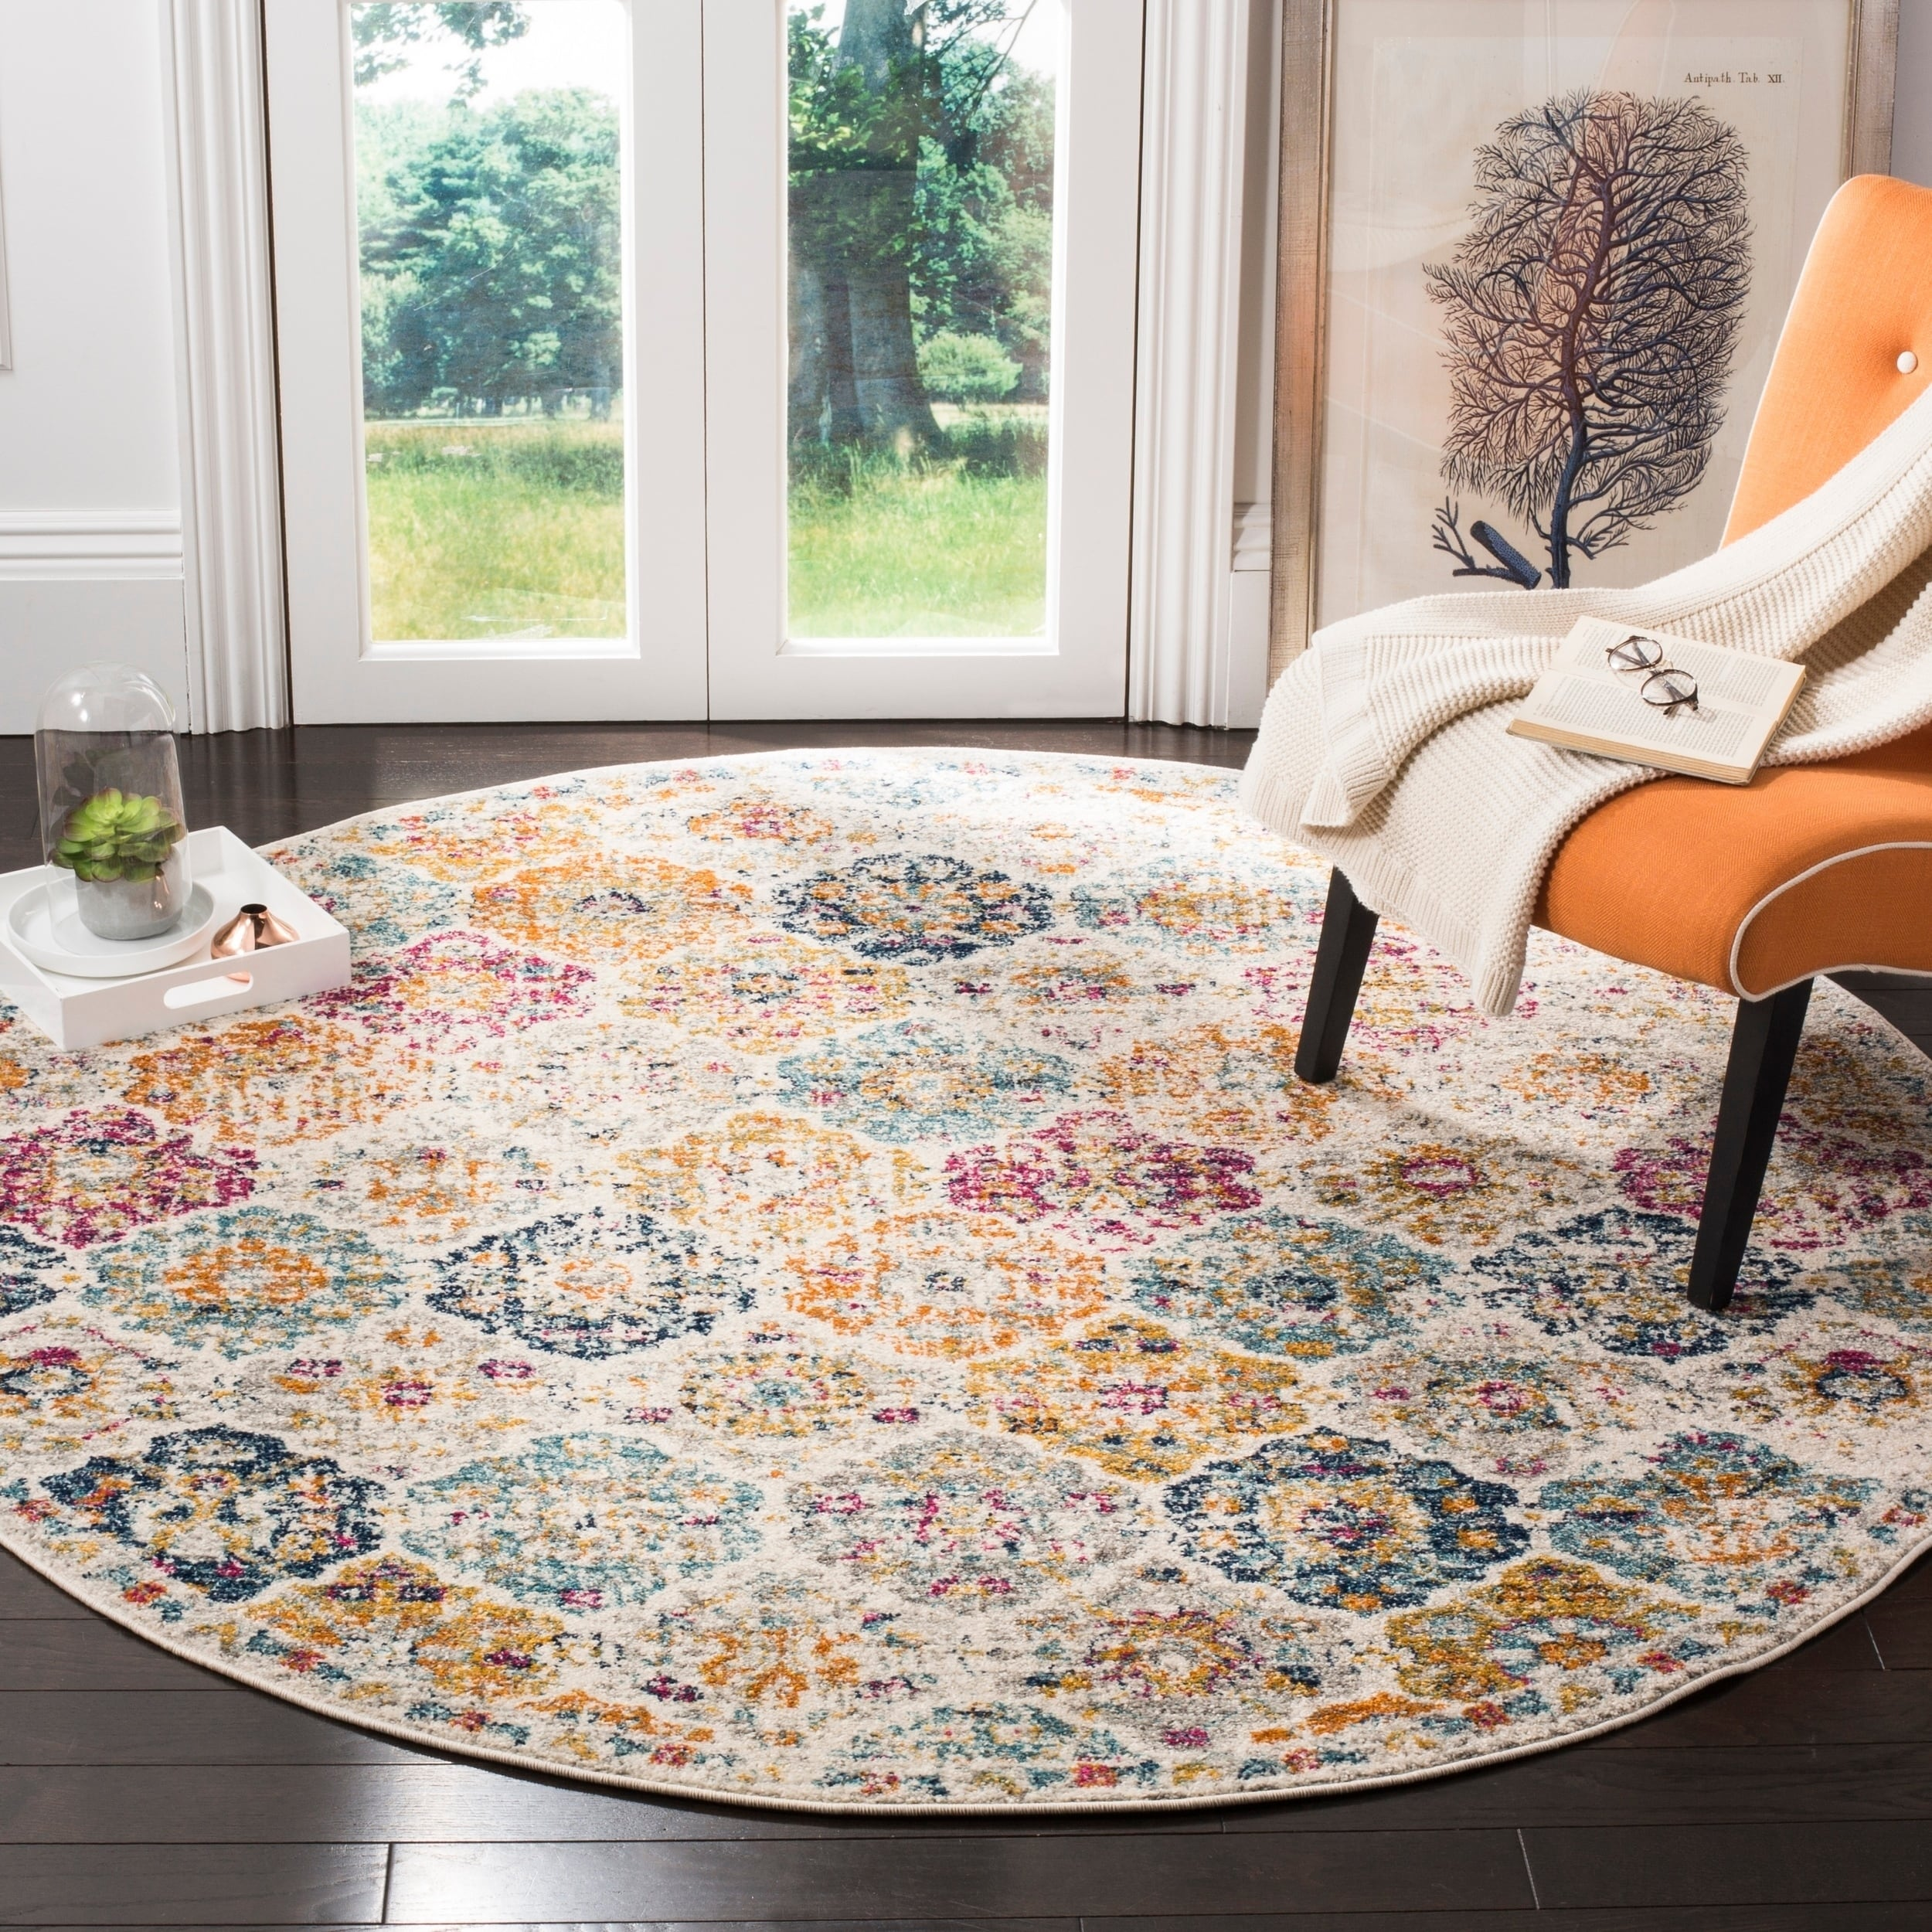 84fc130a282 Shop Safavieh Madison Avery Boho Vintage Cream  Multi Distressed Rug - 7  x  7  Round - On Sale - Free Shipping Today - Overstock - 14644934